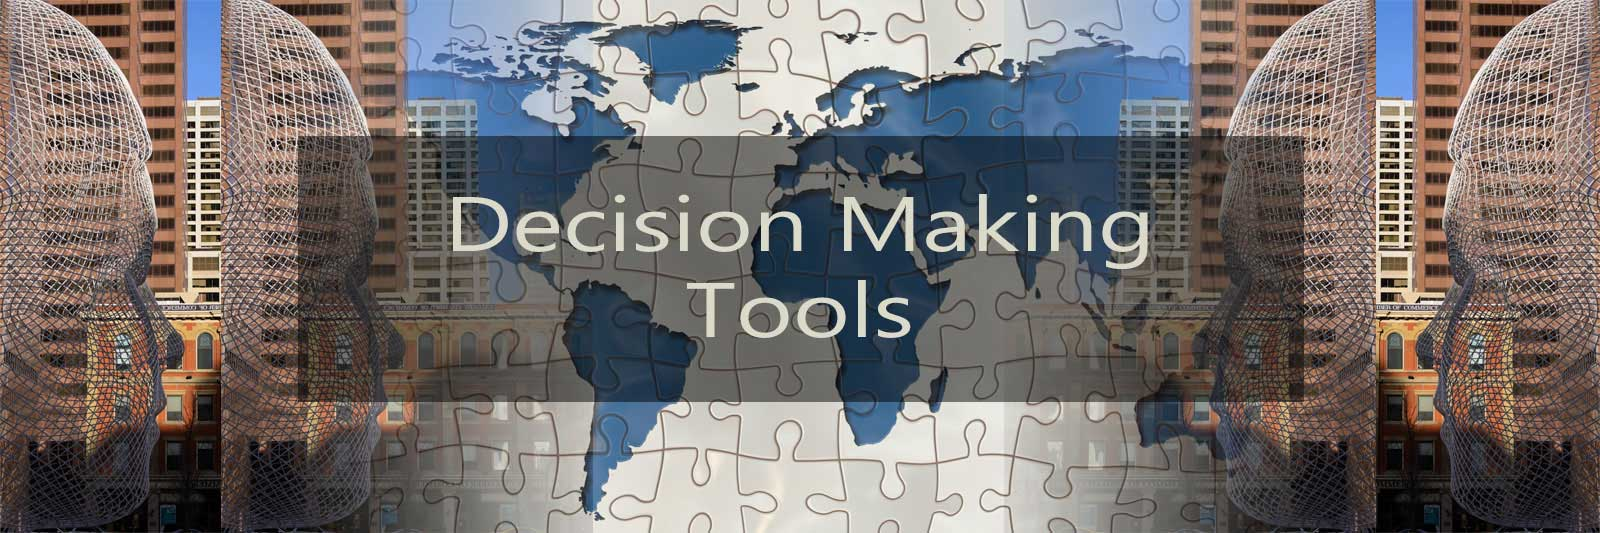 Un-biased decision processes that end with an actionable plan